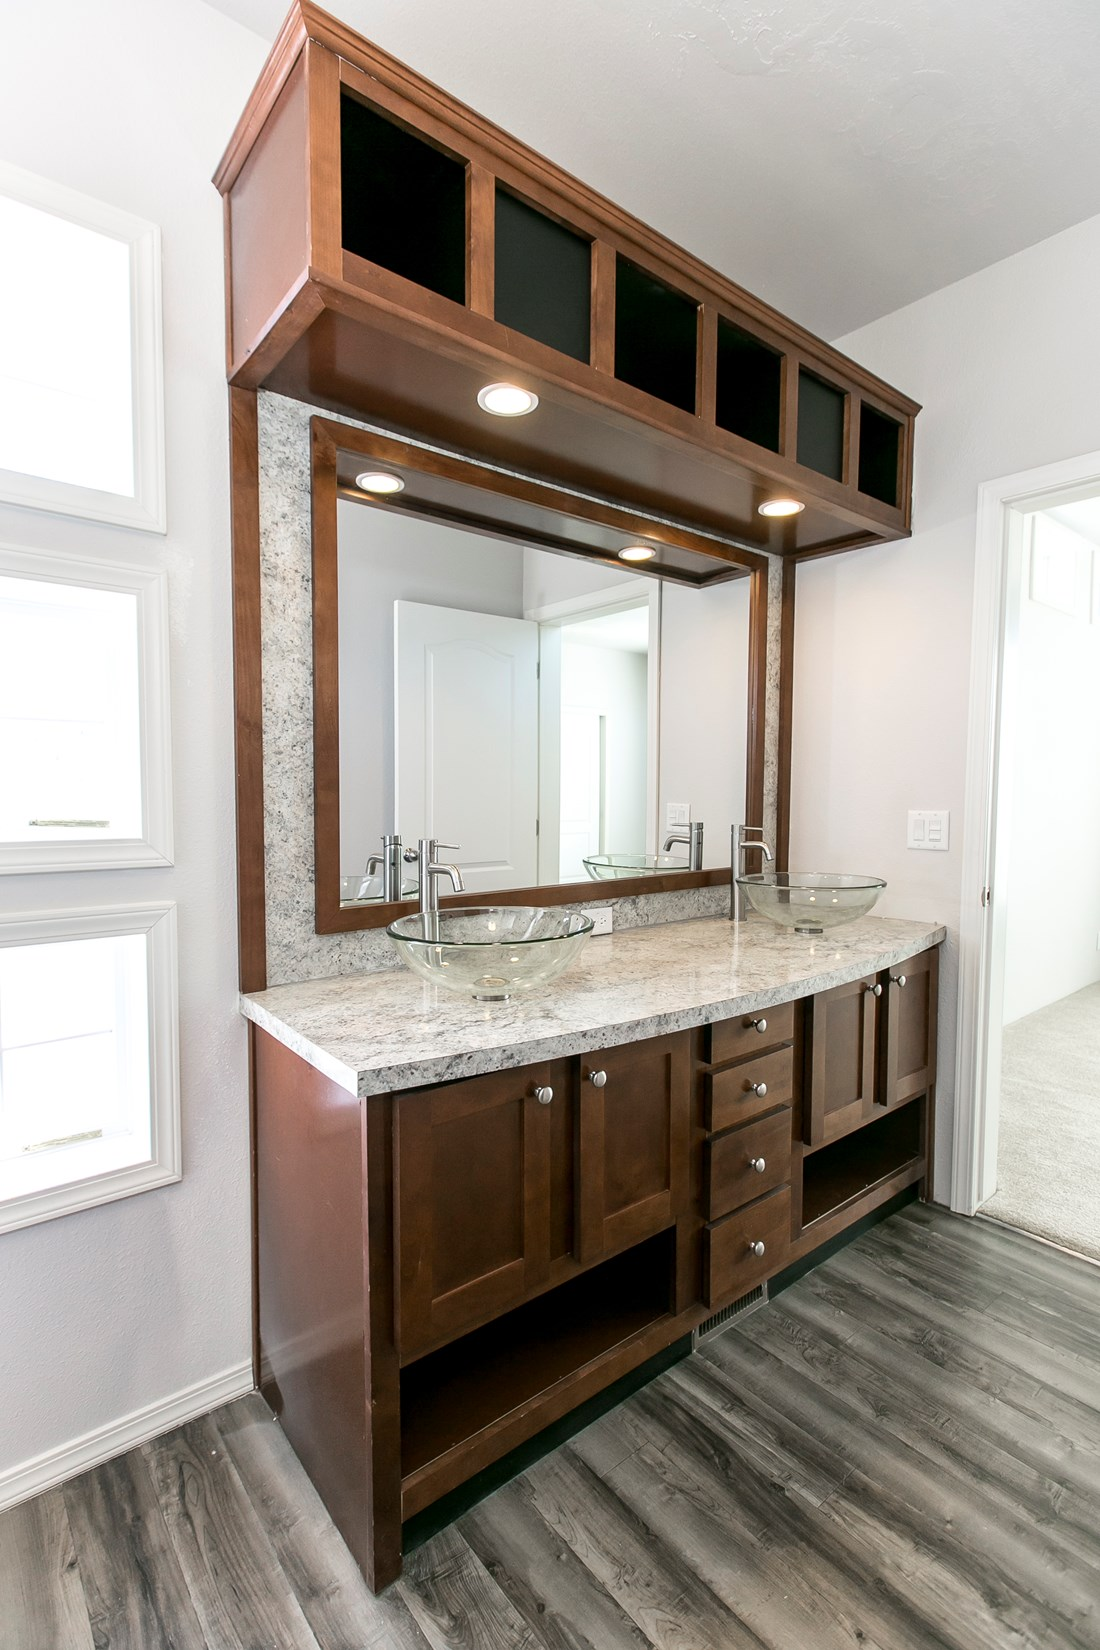 The ING681F EUCALYPTUS   (FULL) GW Master Bathroom. This Manufactured Mobile Home features 3 bedrooms and 2 baths.